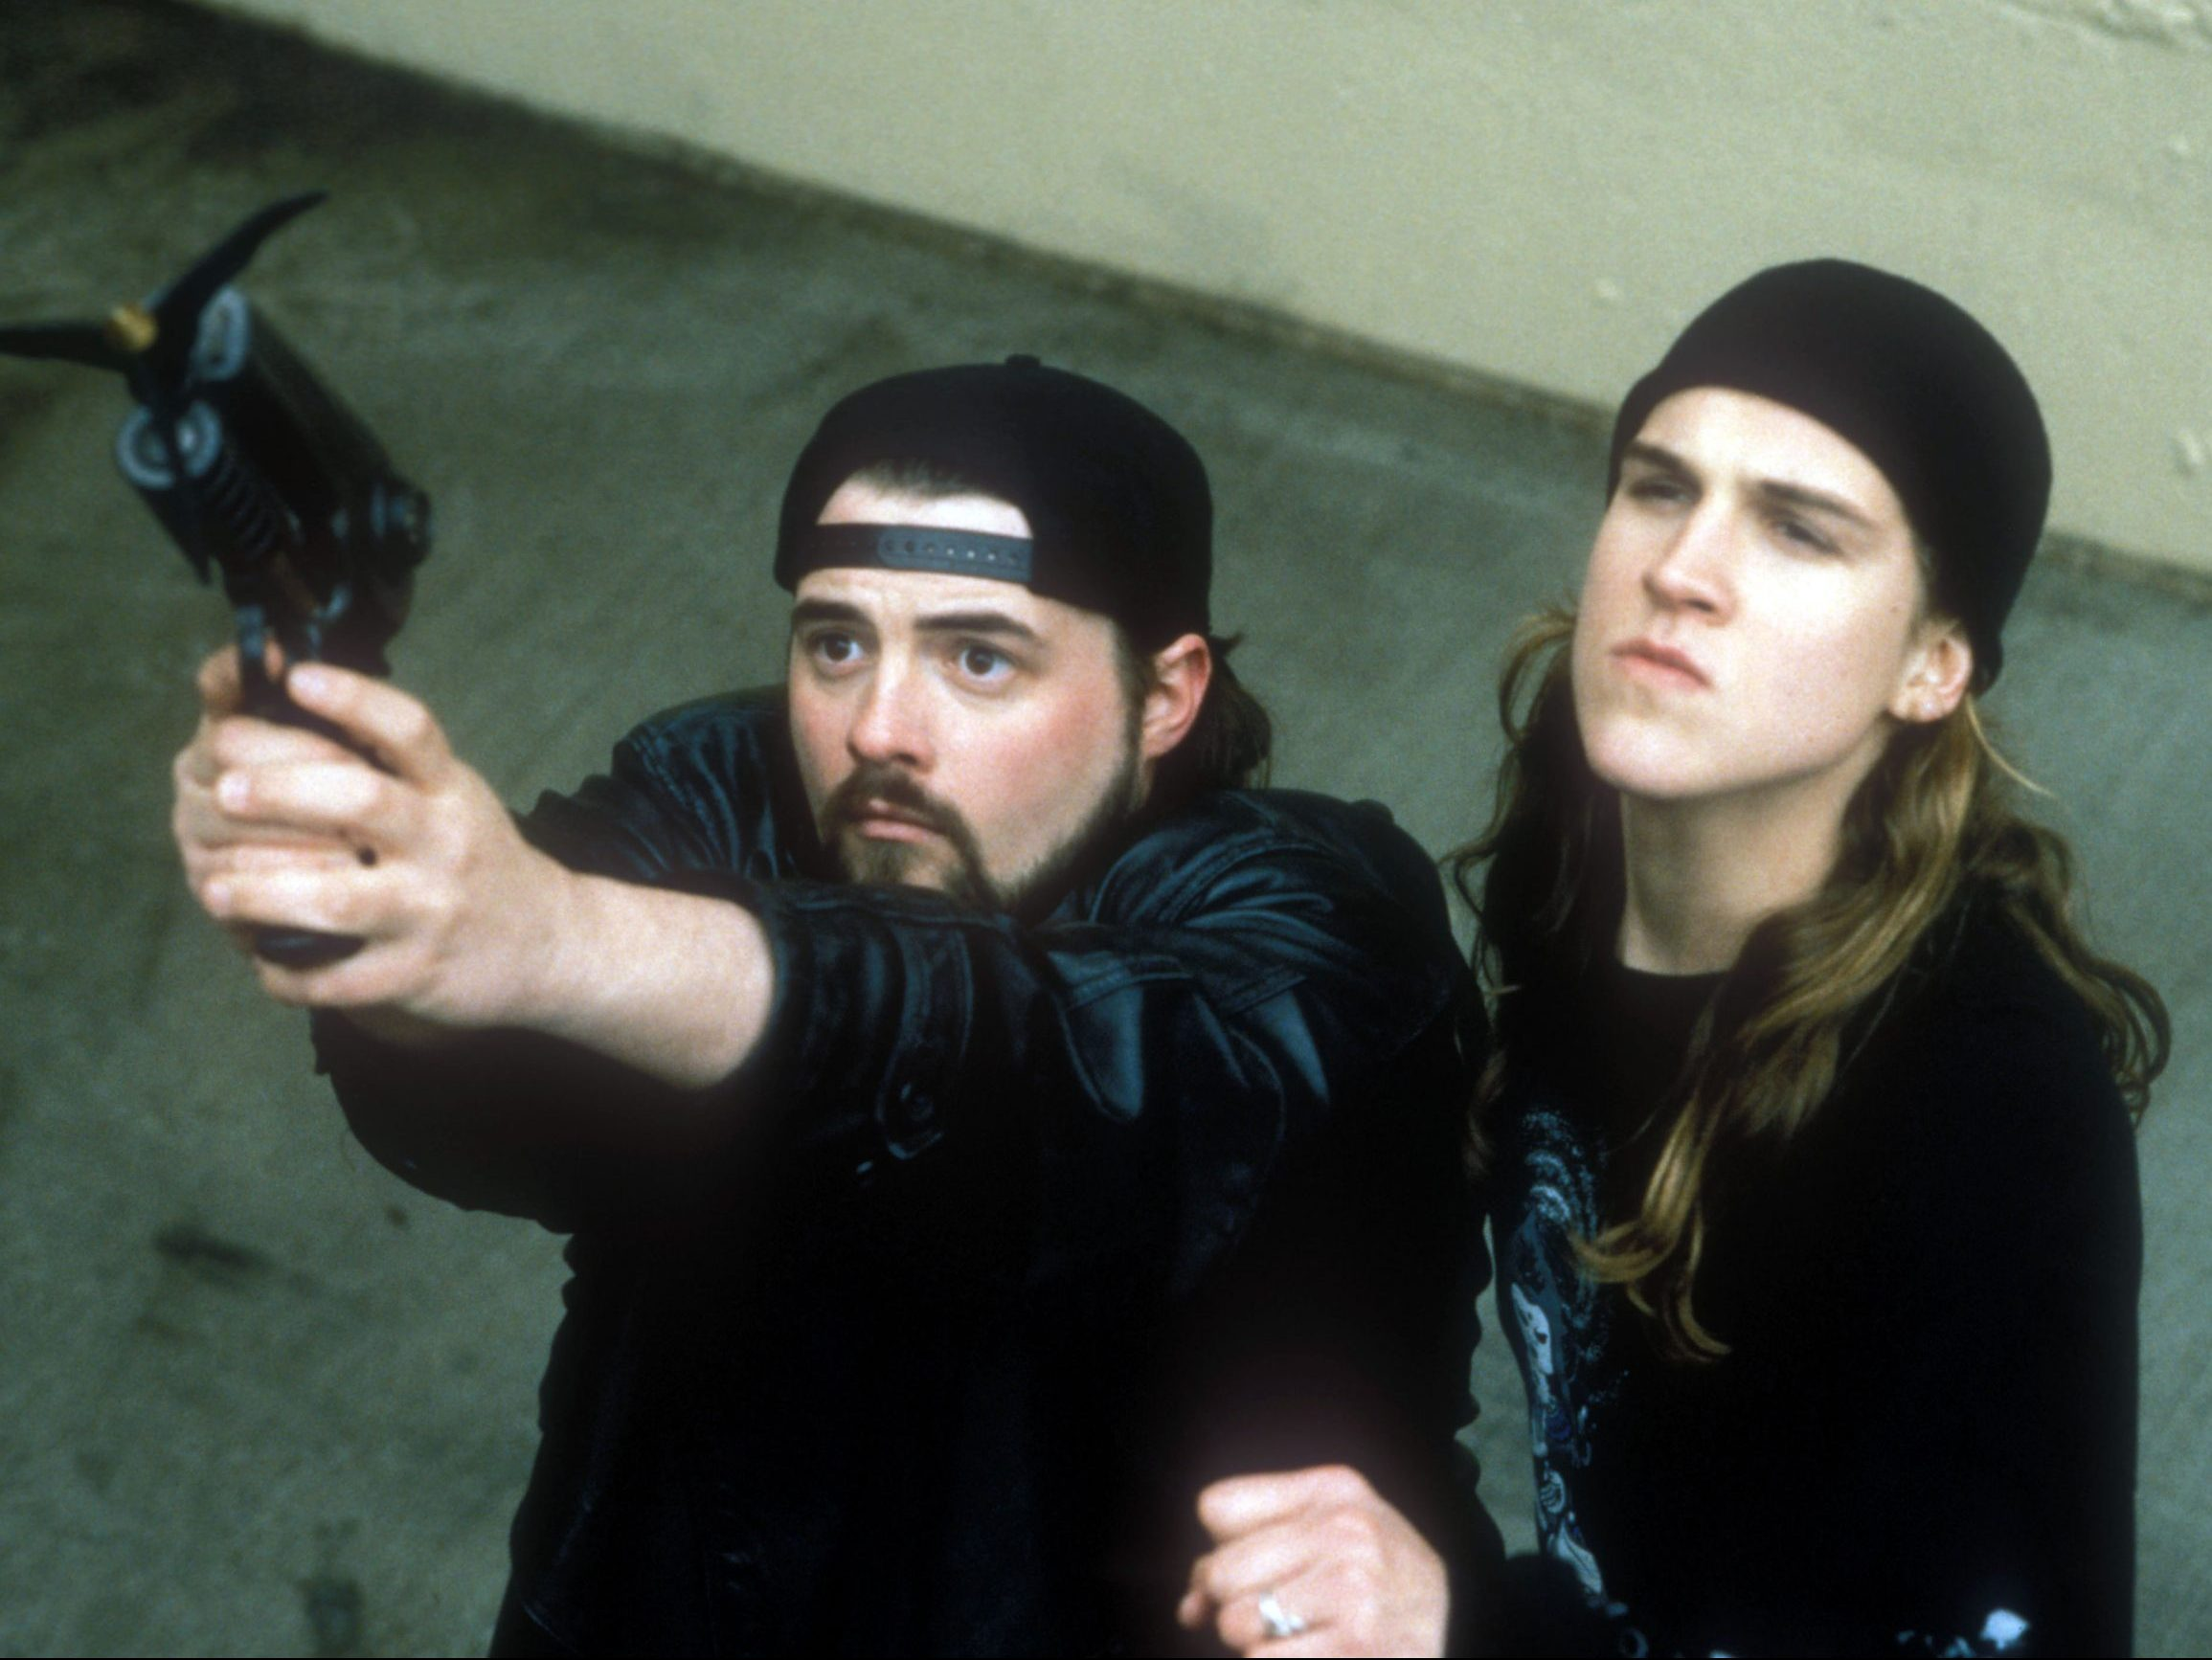 5880918k scaled e1615565164395 10 Reasons Why Mallrats Was One Of The Most Important Comedies Of The 1990s